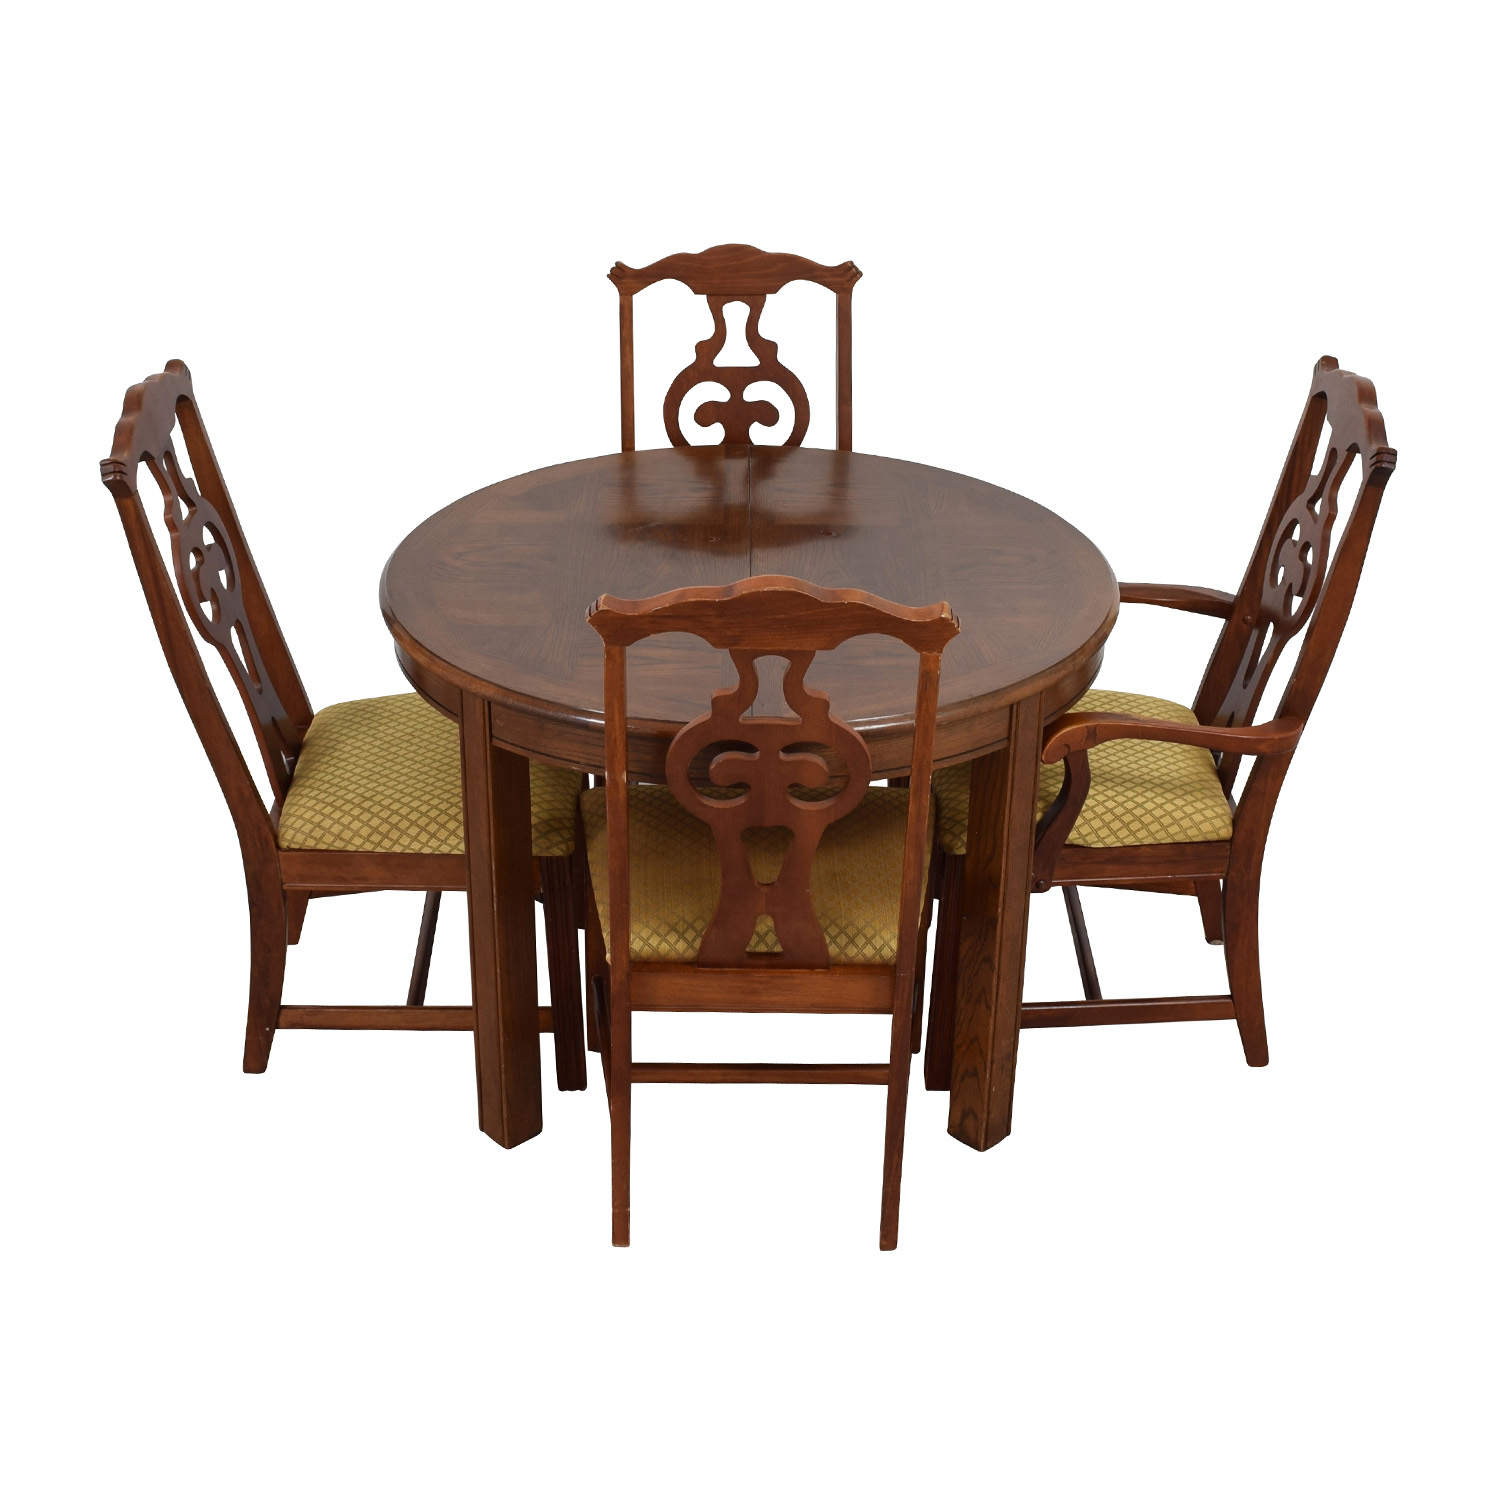 Hagerty Hagerty Wooden Dining Set nyc